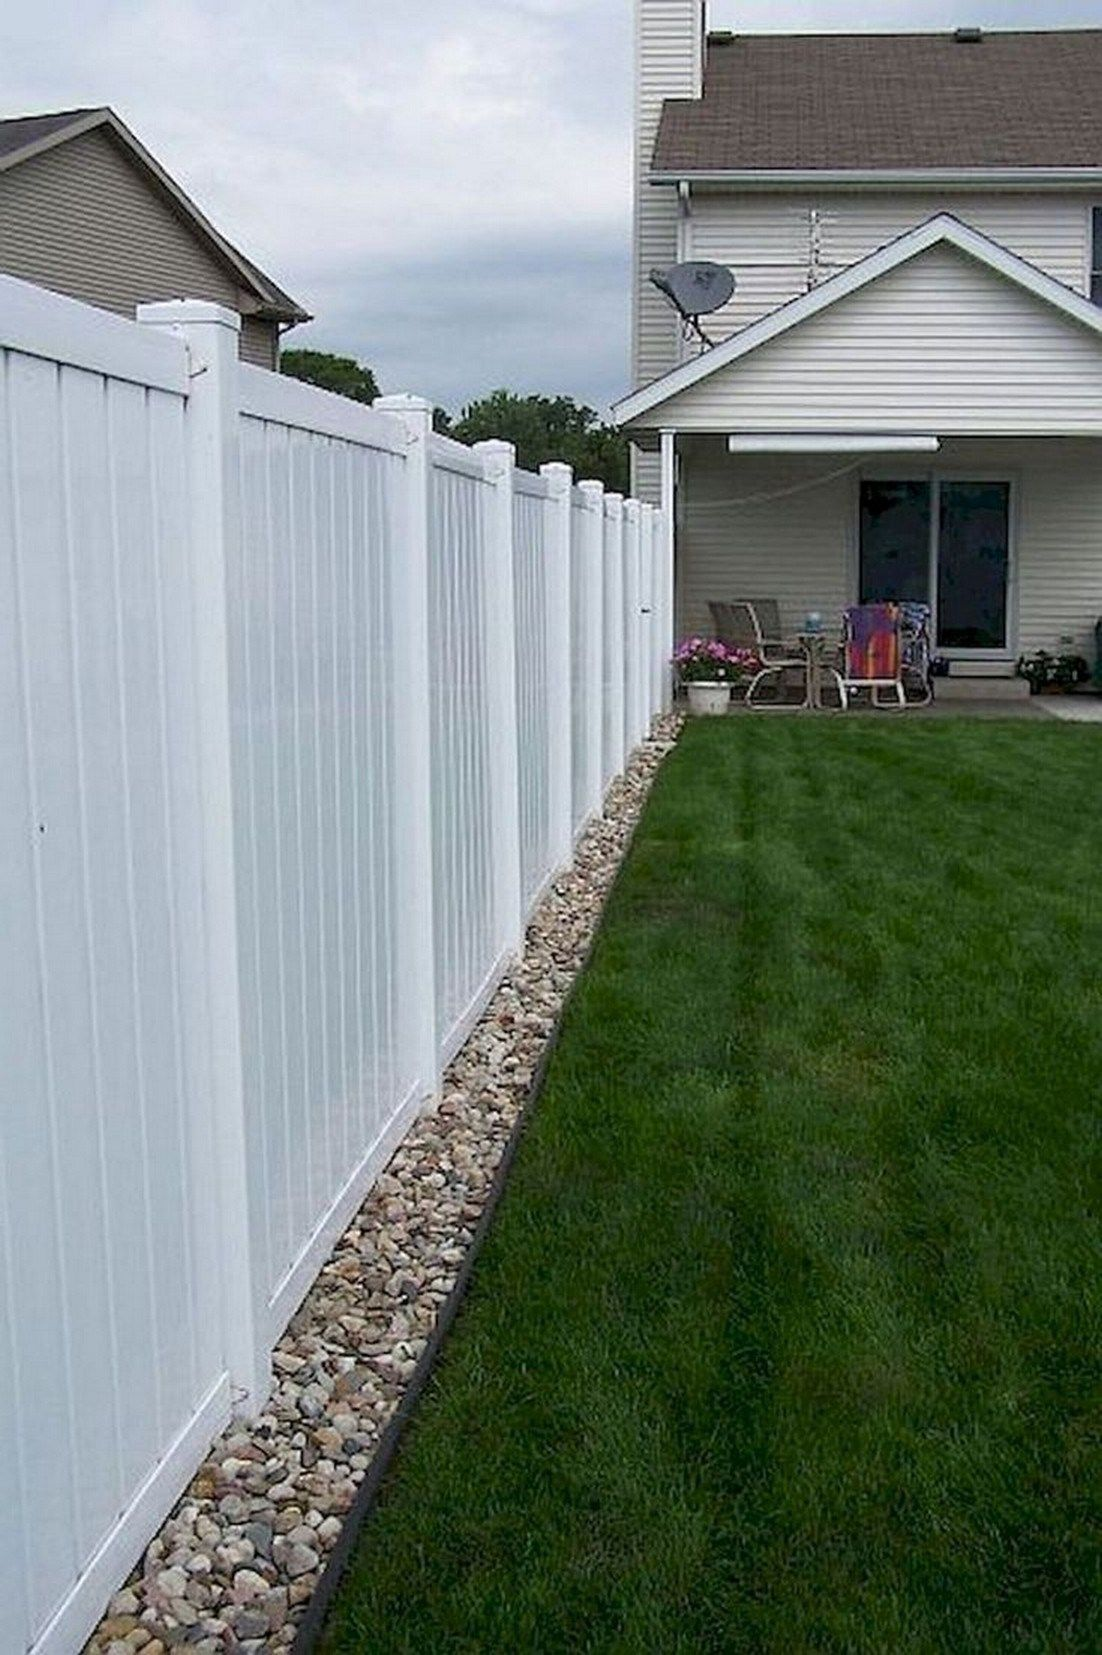 44 great ideas for backyard landscaping on a budget for on backyard garden fence decor ideas id=95927